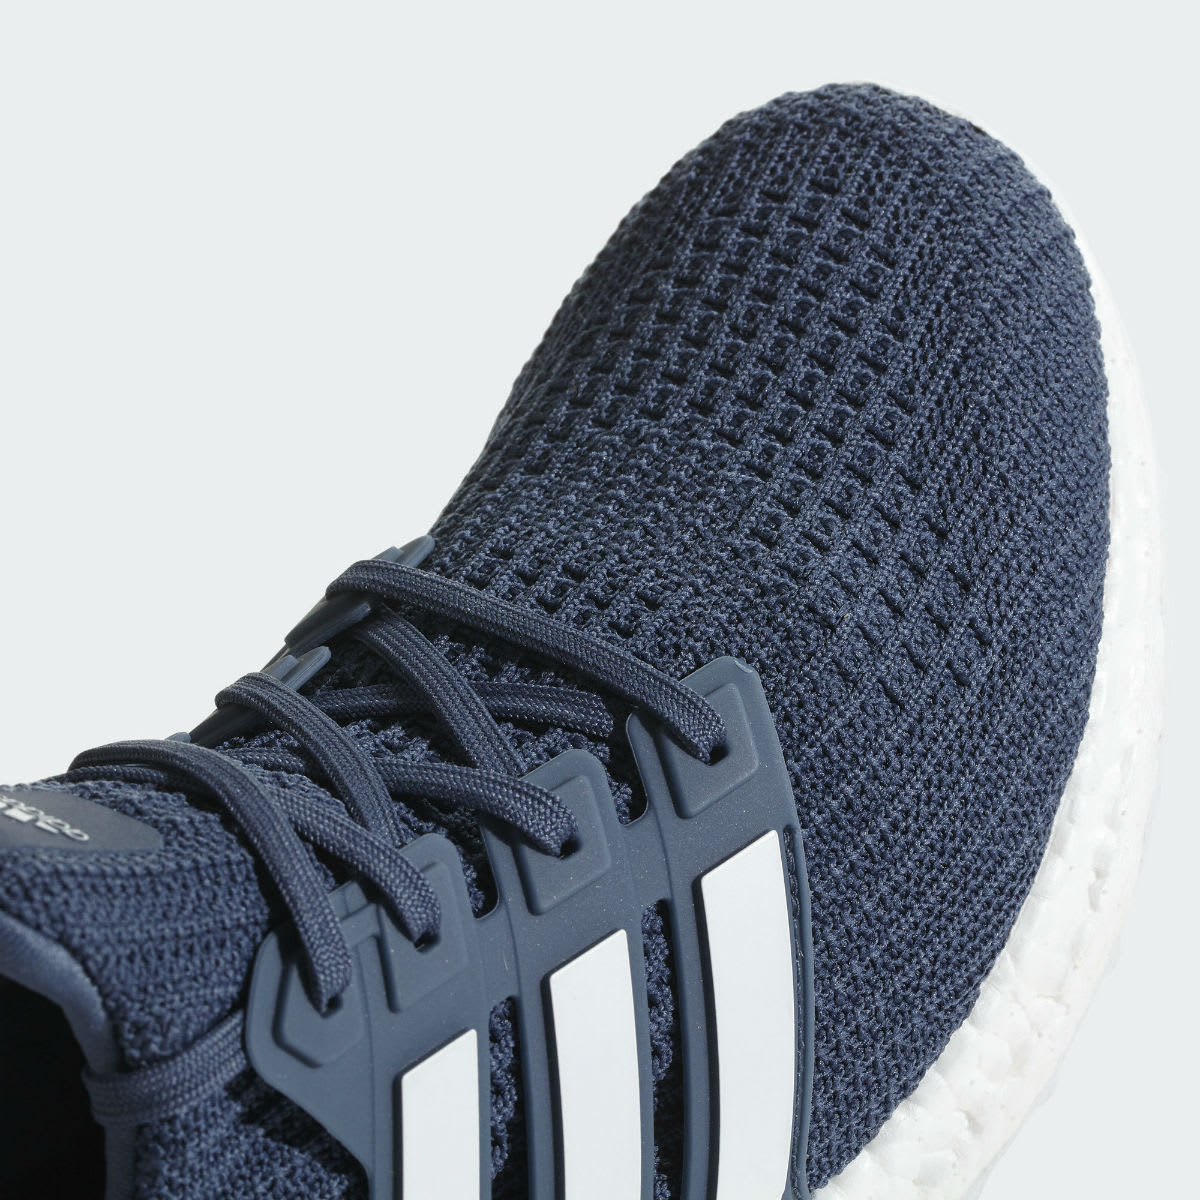 ADIDAS PARLEY ULTRABOOST 4.0 early review! (QCSC LTS, Parley